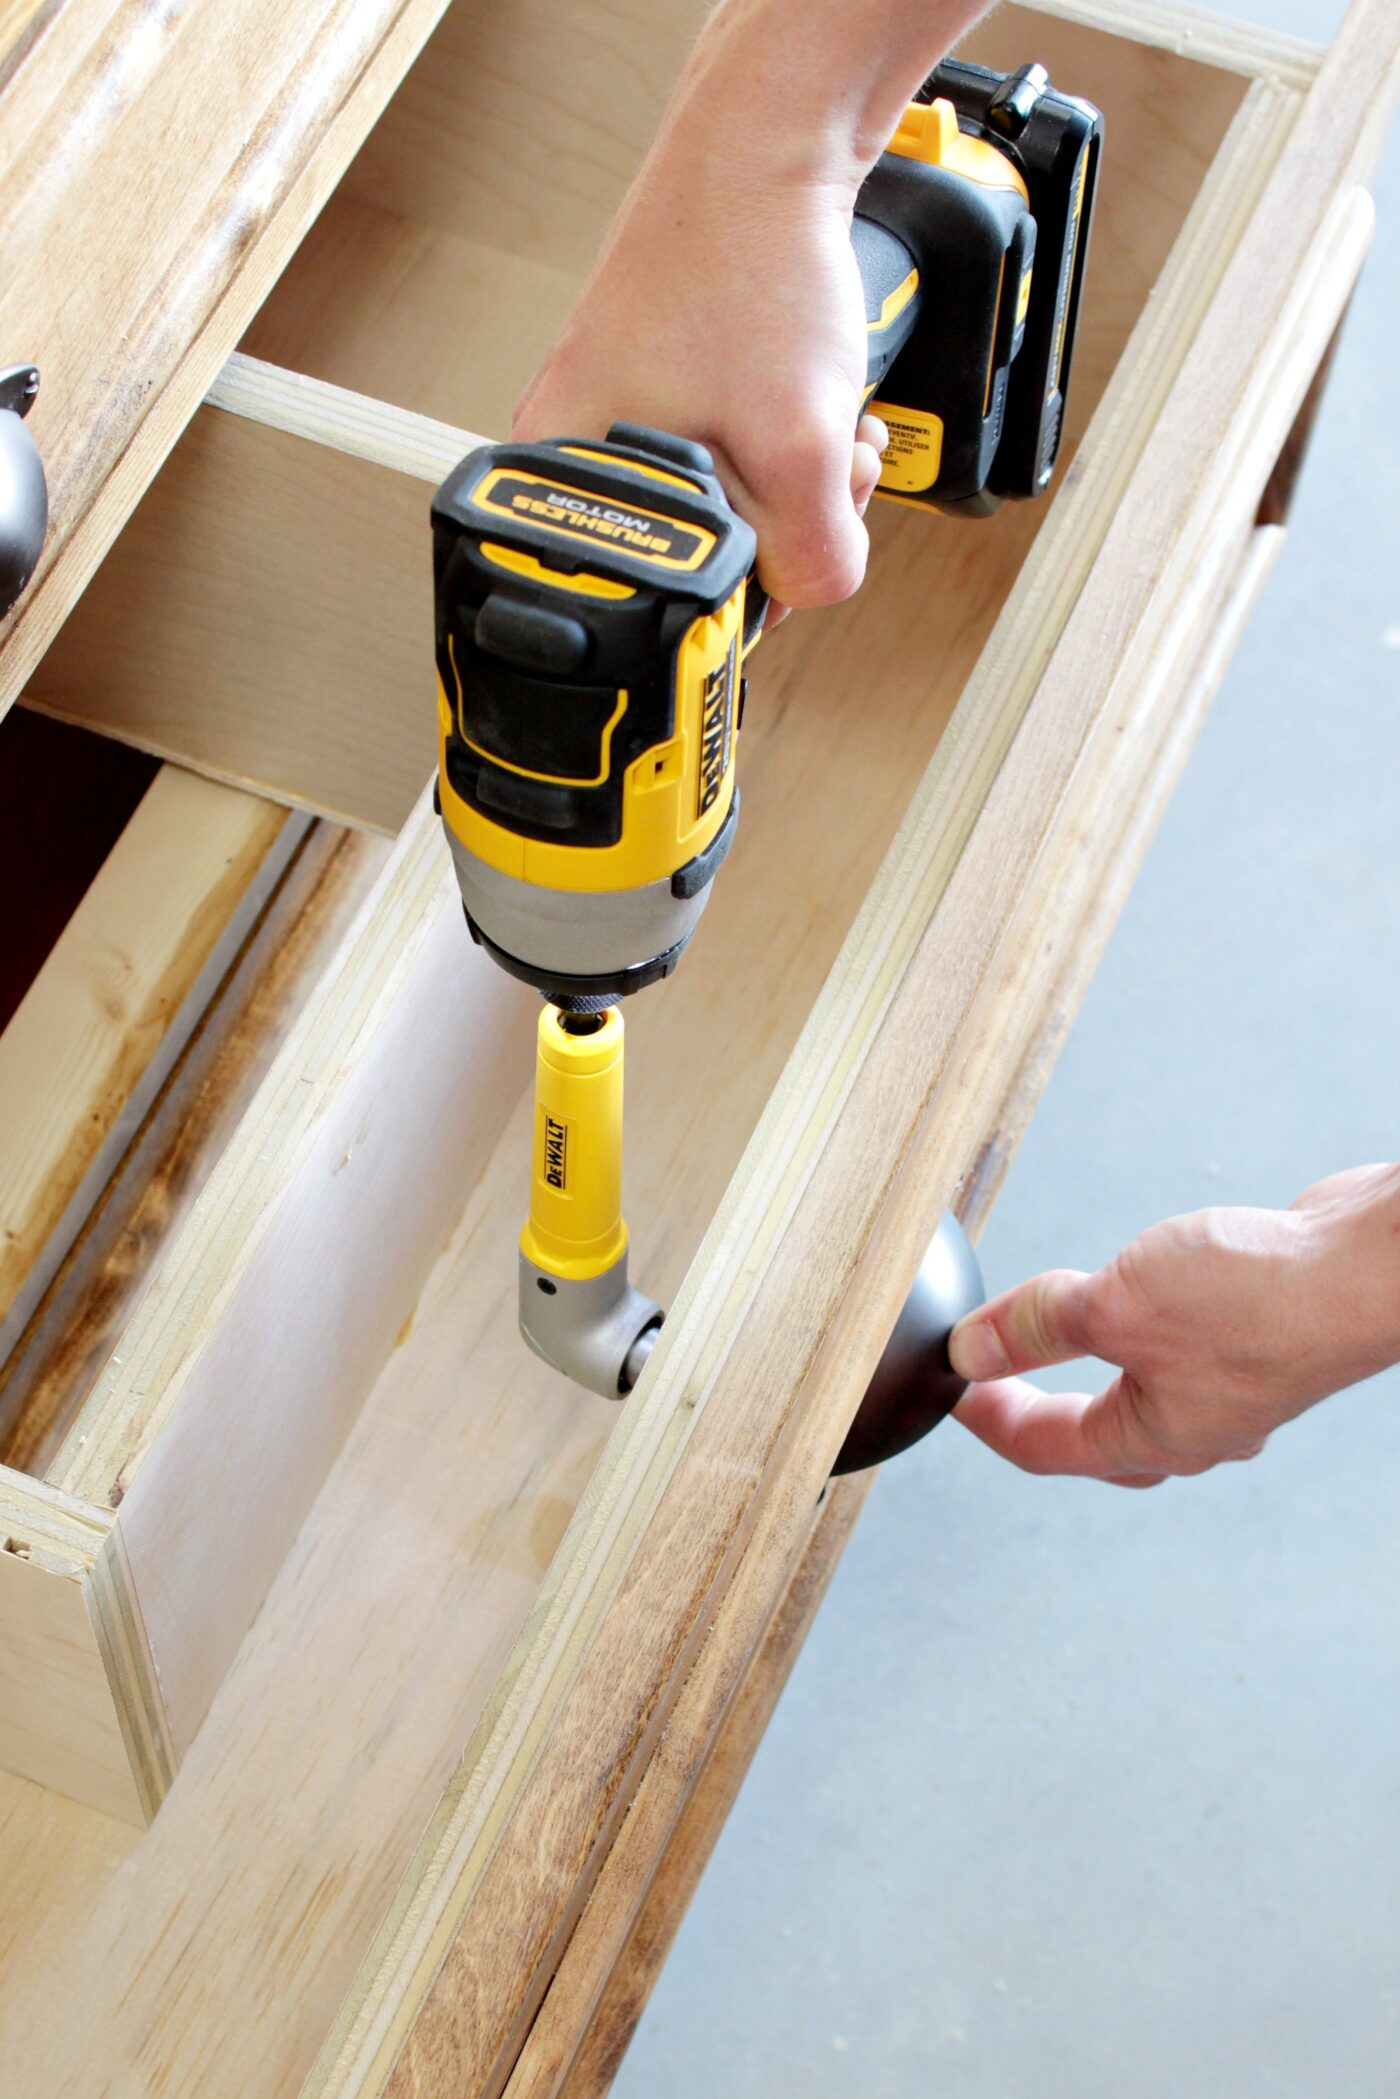 Dewalt 90 degree attachment as gift guide idea under $40